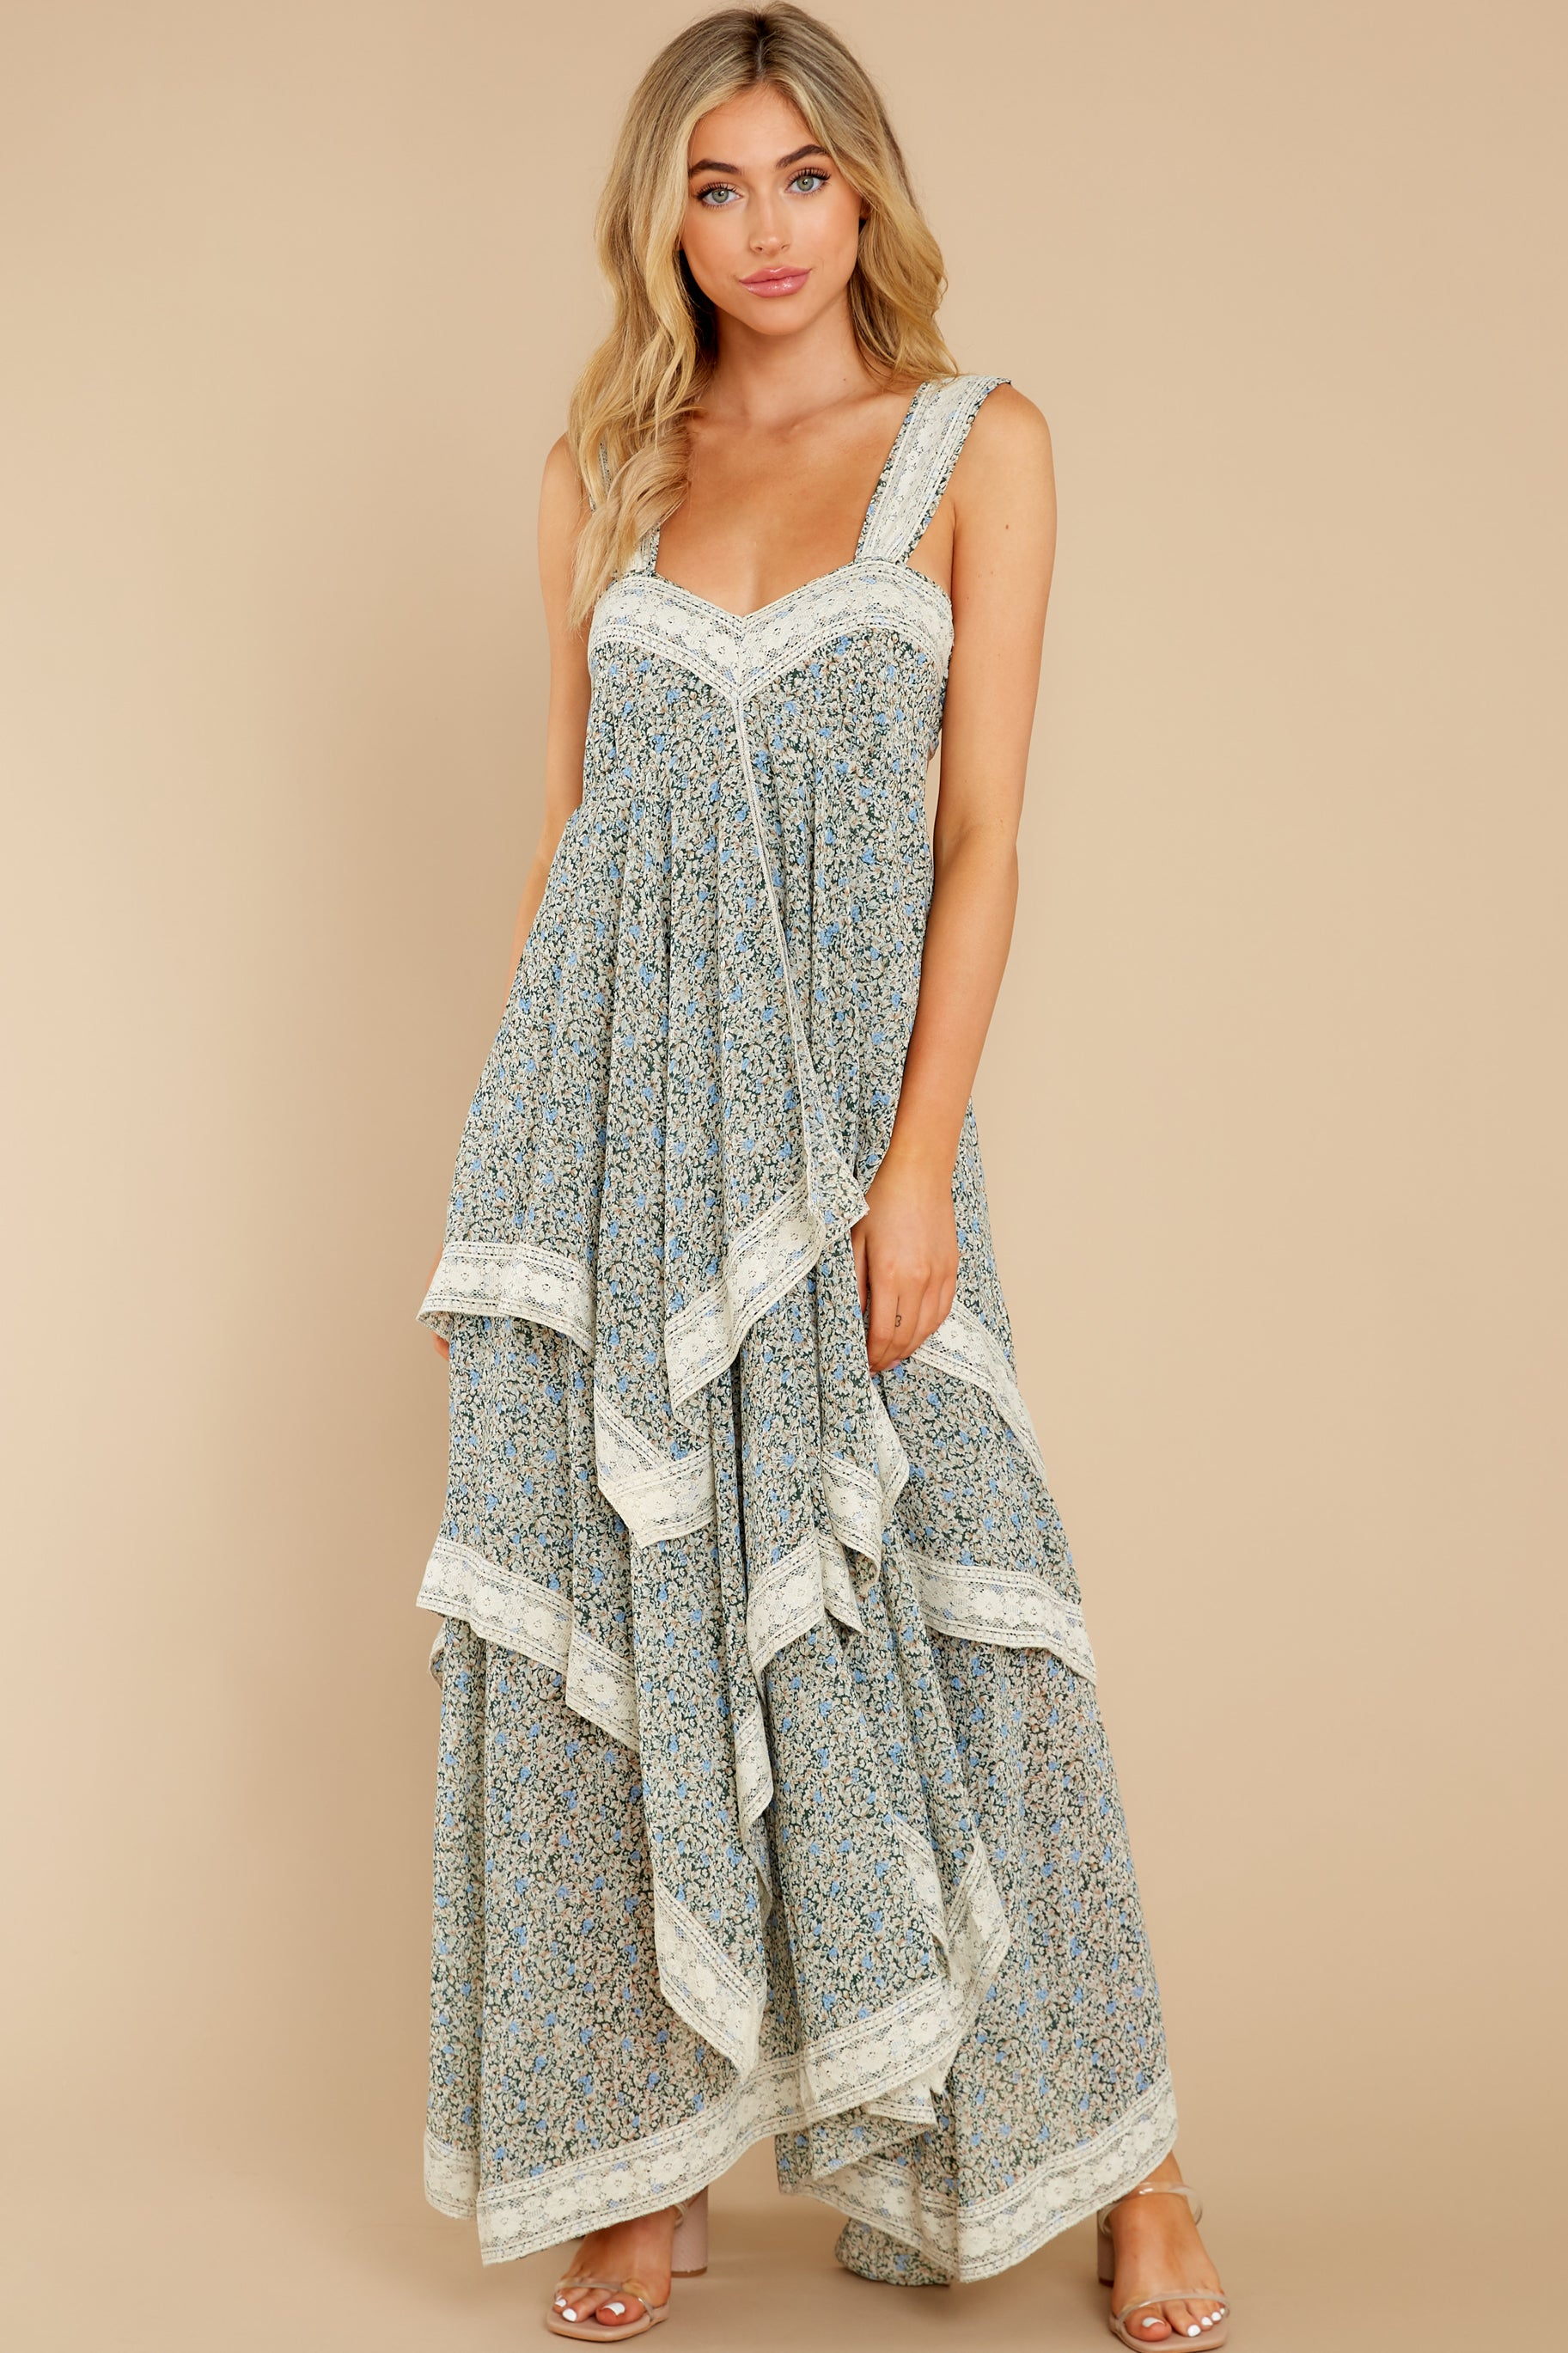 2 Fall In Love Sage Green Floral Print Maxi Dress at reddress.com